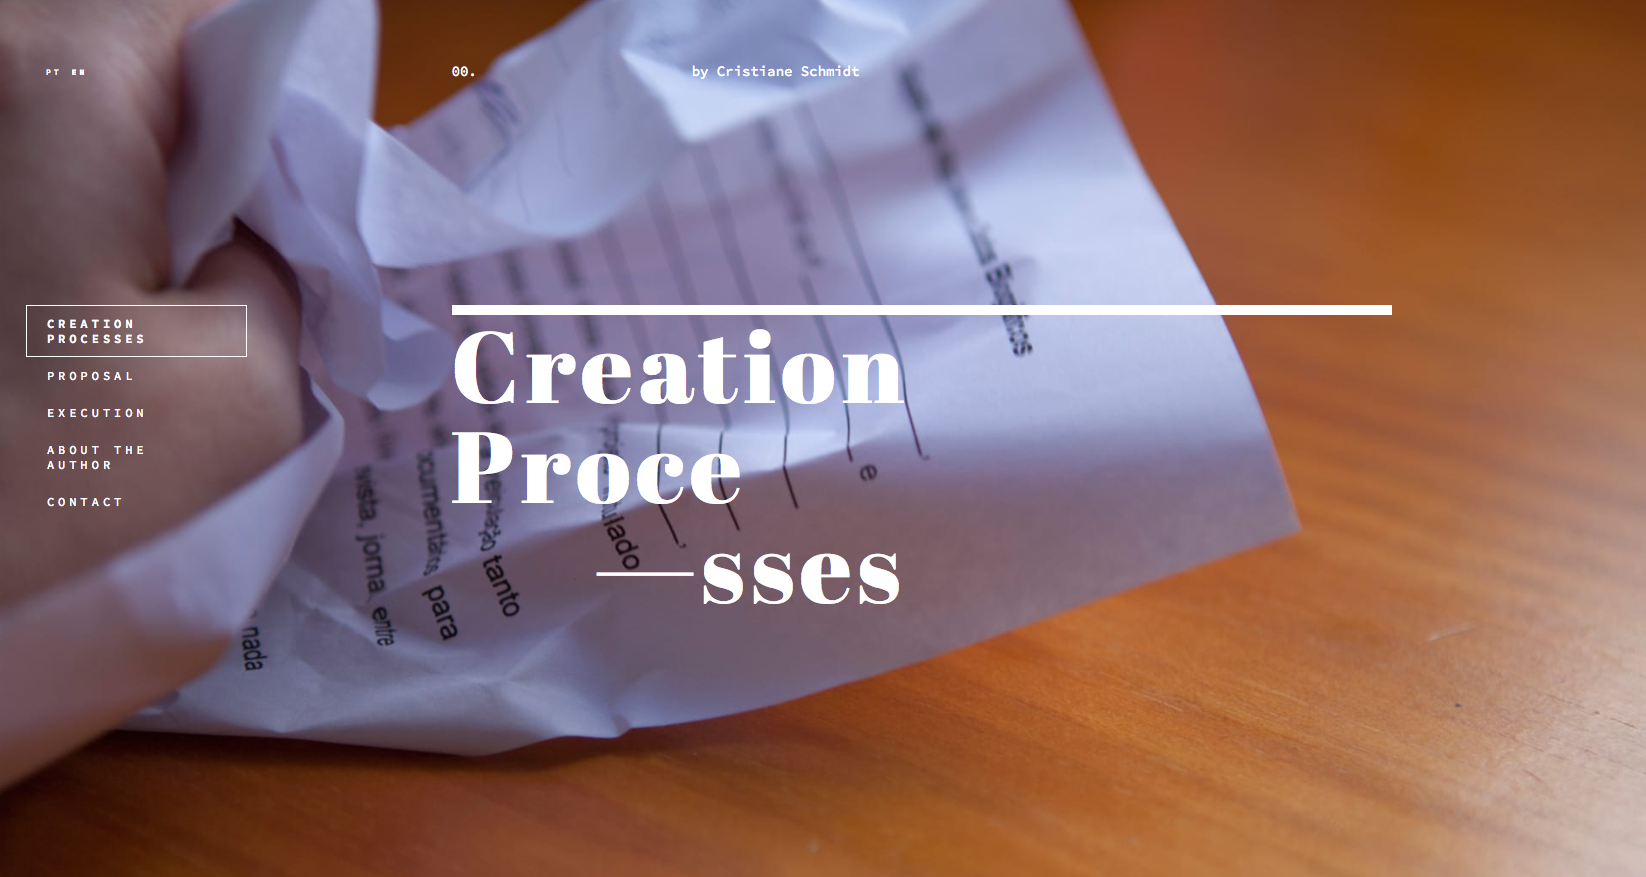 Creation Processes website